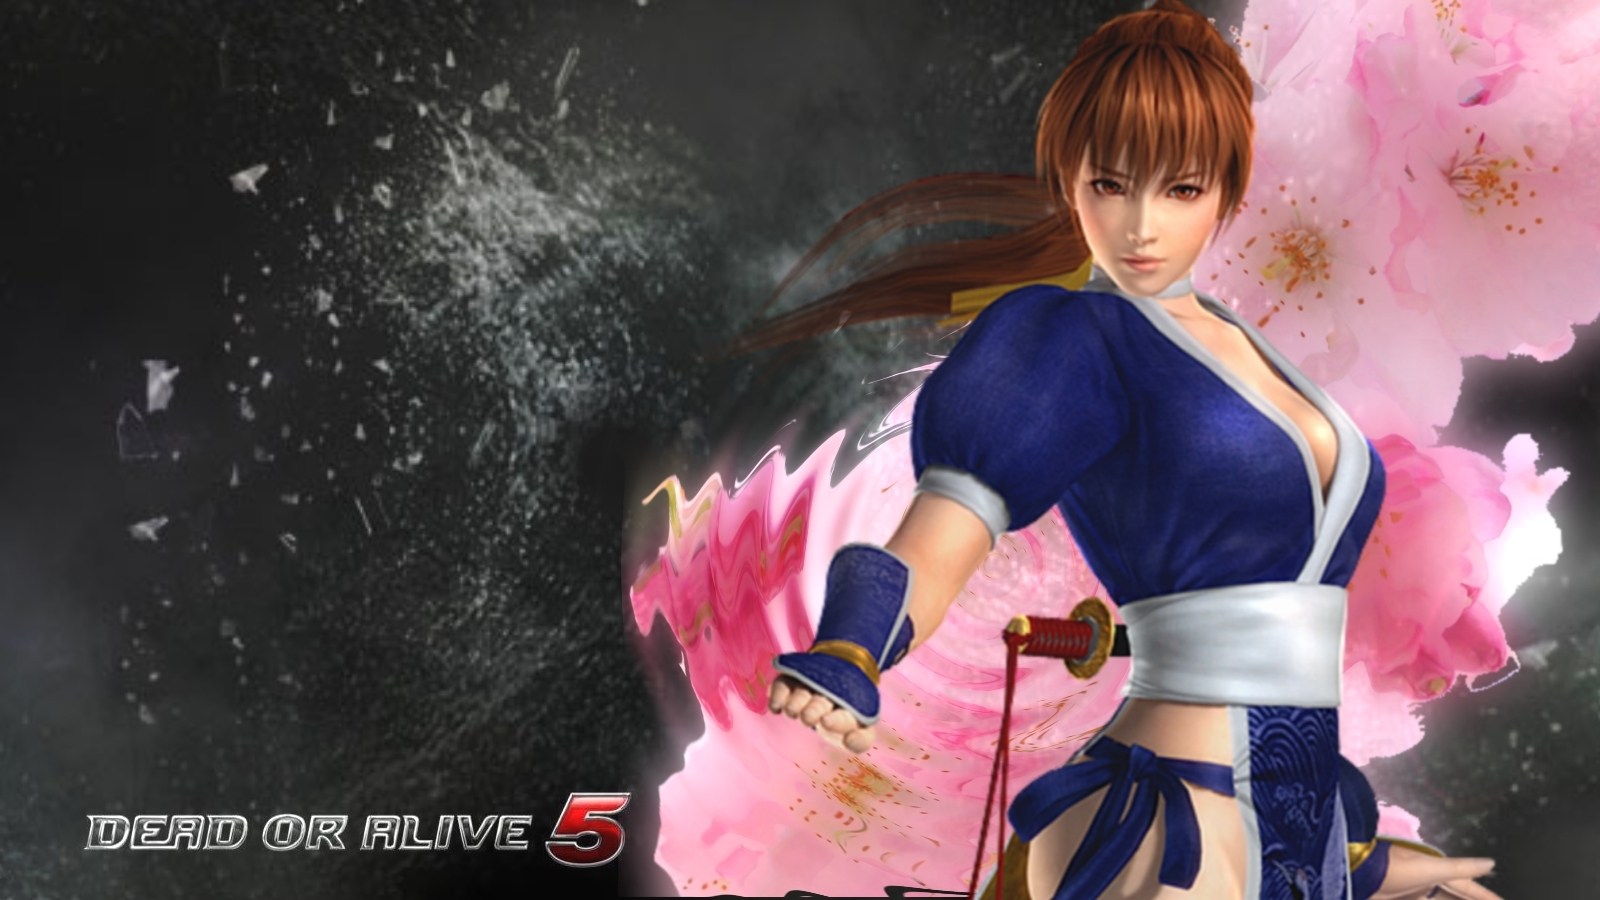 The Elderly Gamer Dead or Alive 5 Character Wallpaper 1600x900